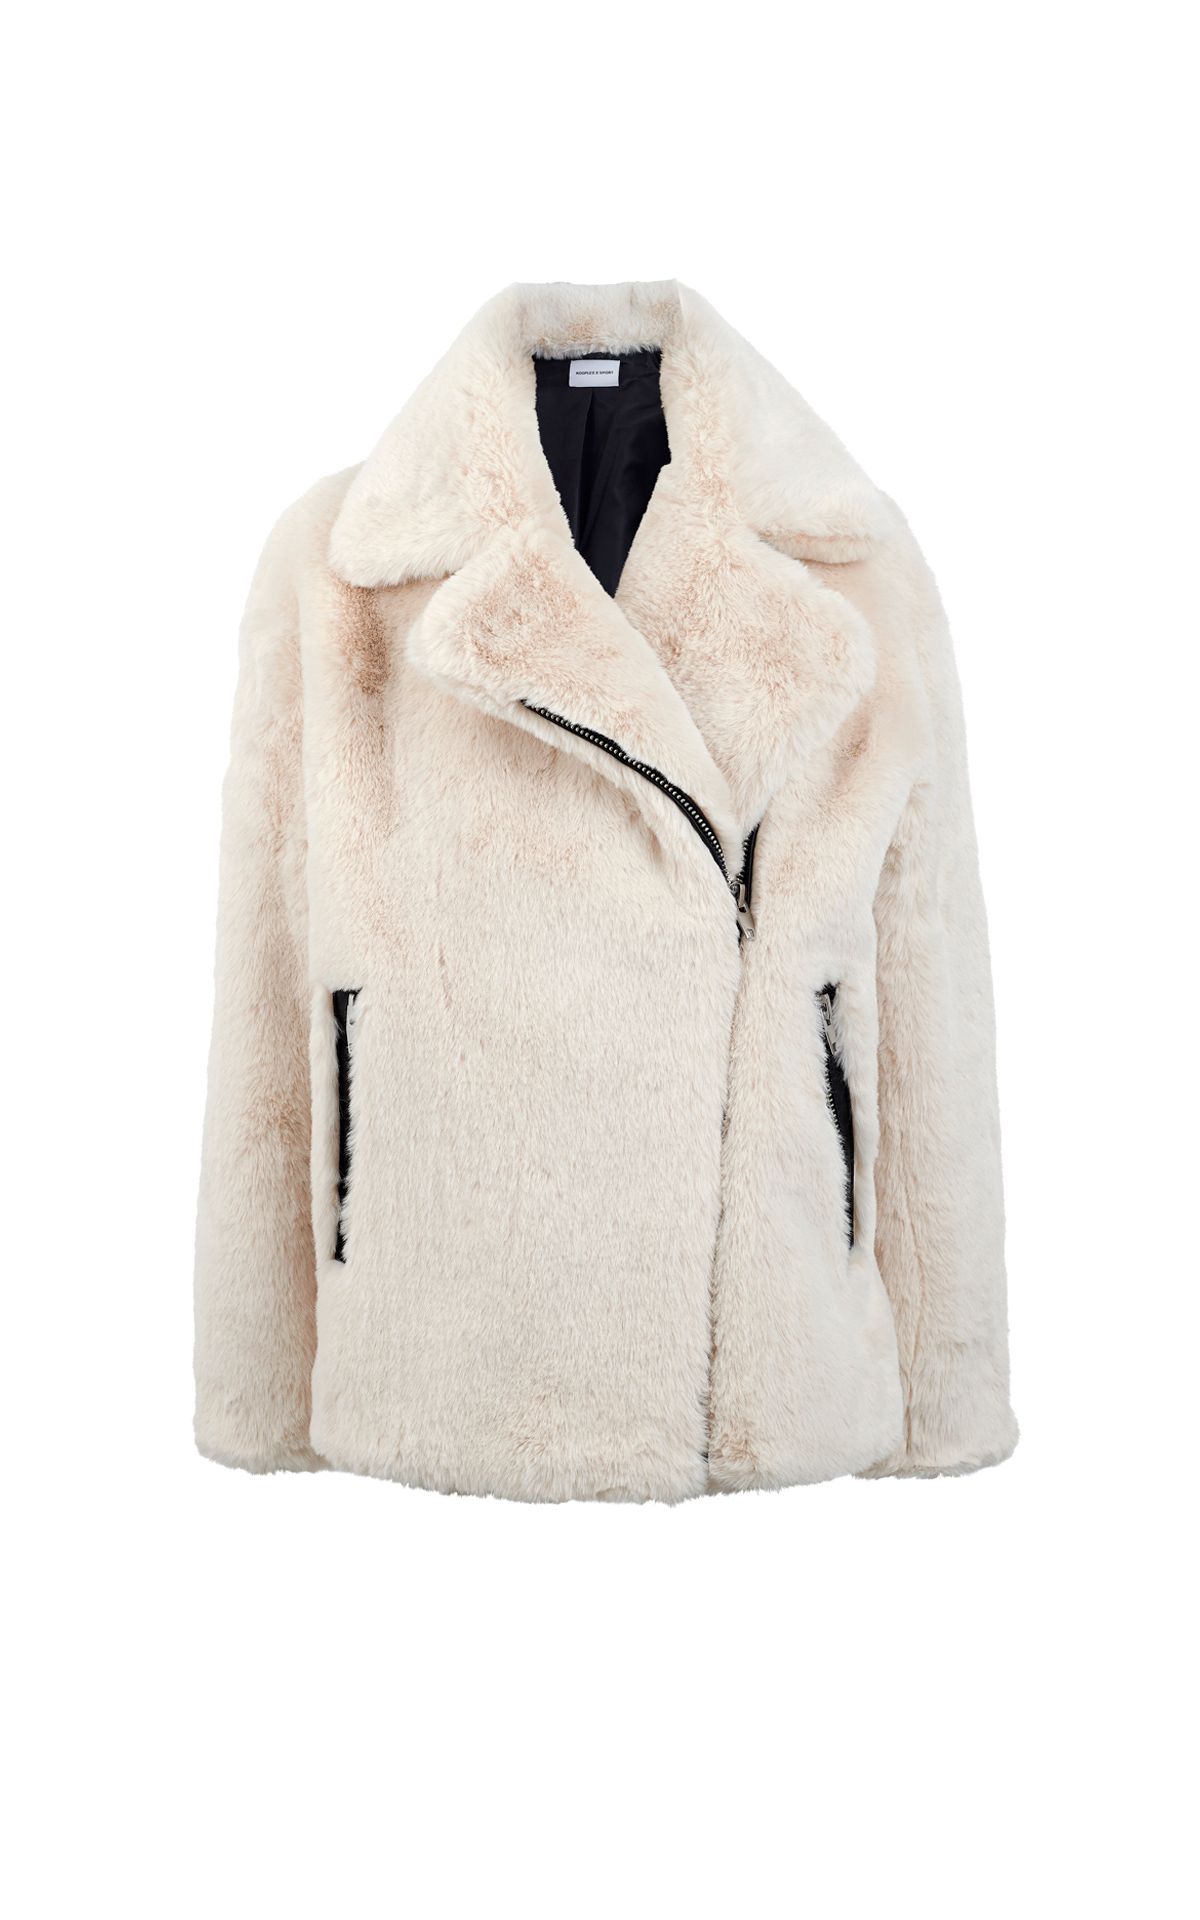 Chaqueta de pelo blanca The Kooples